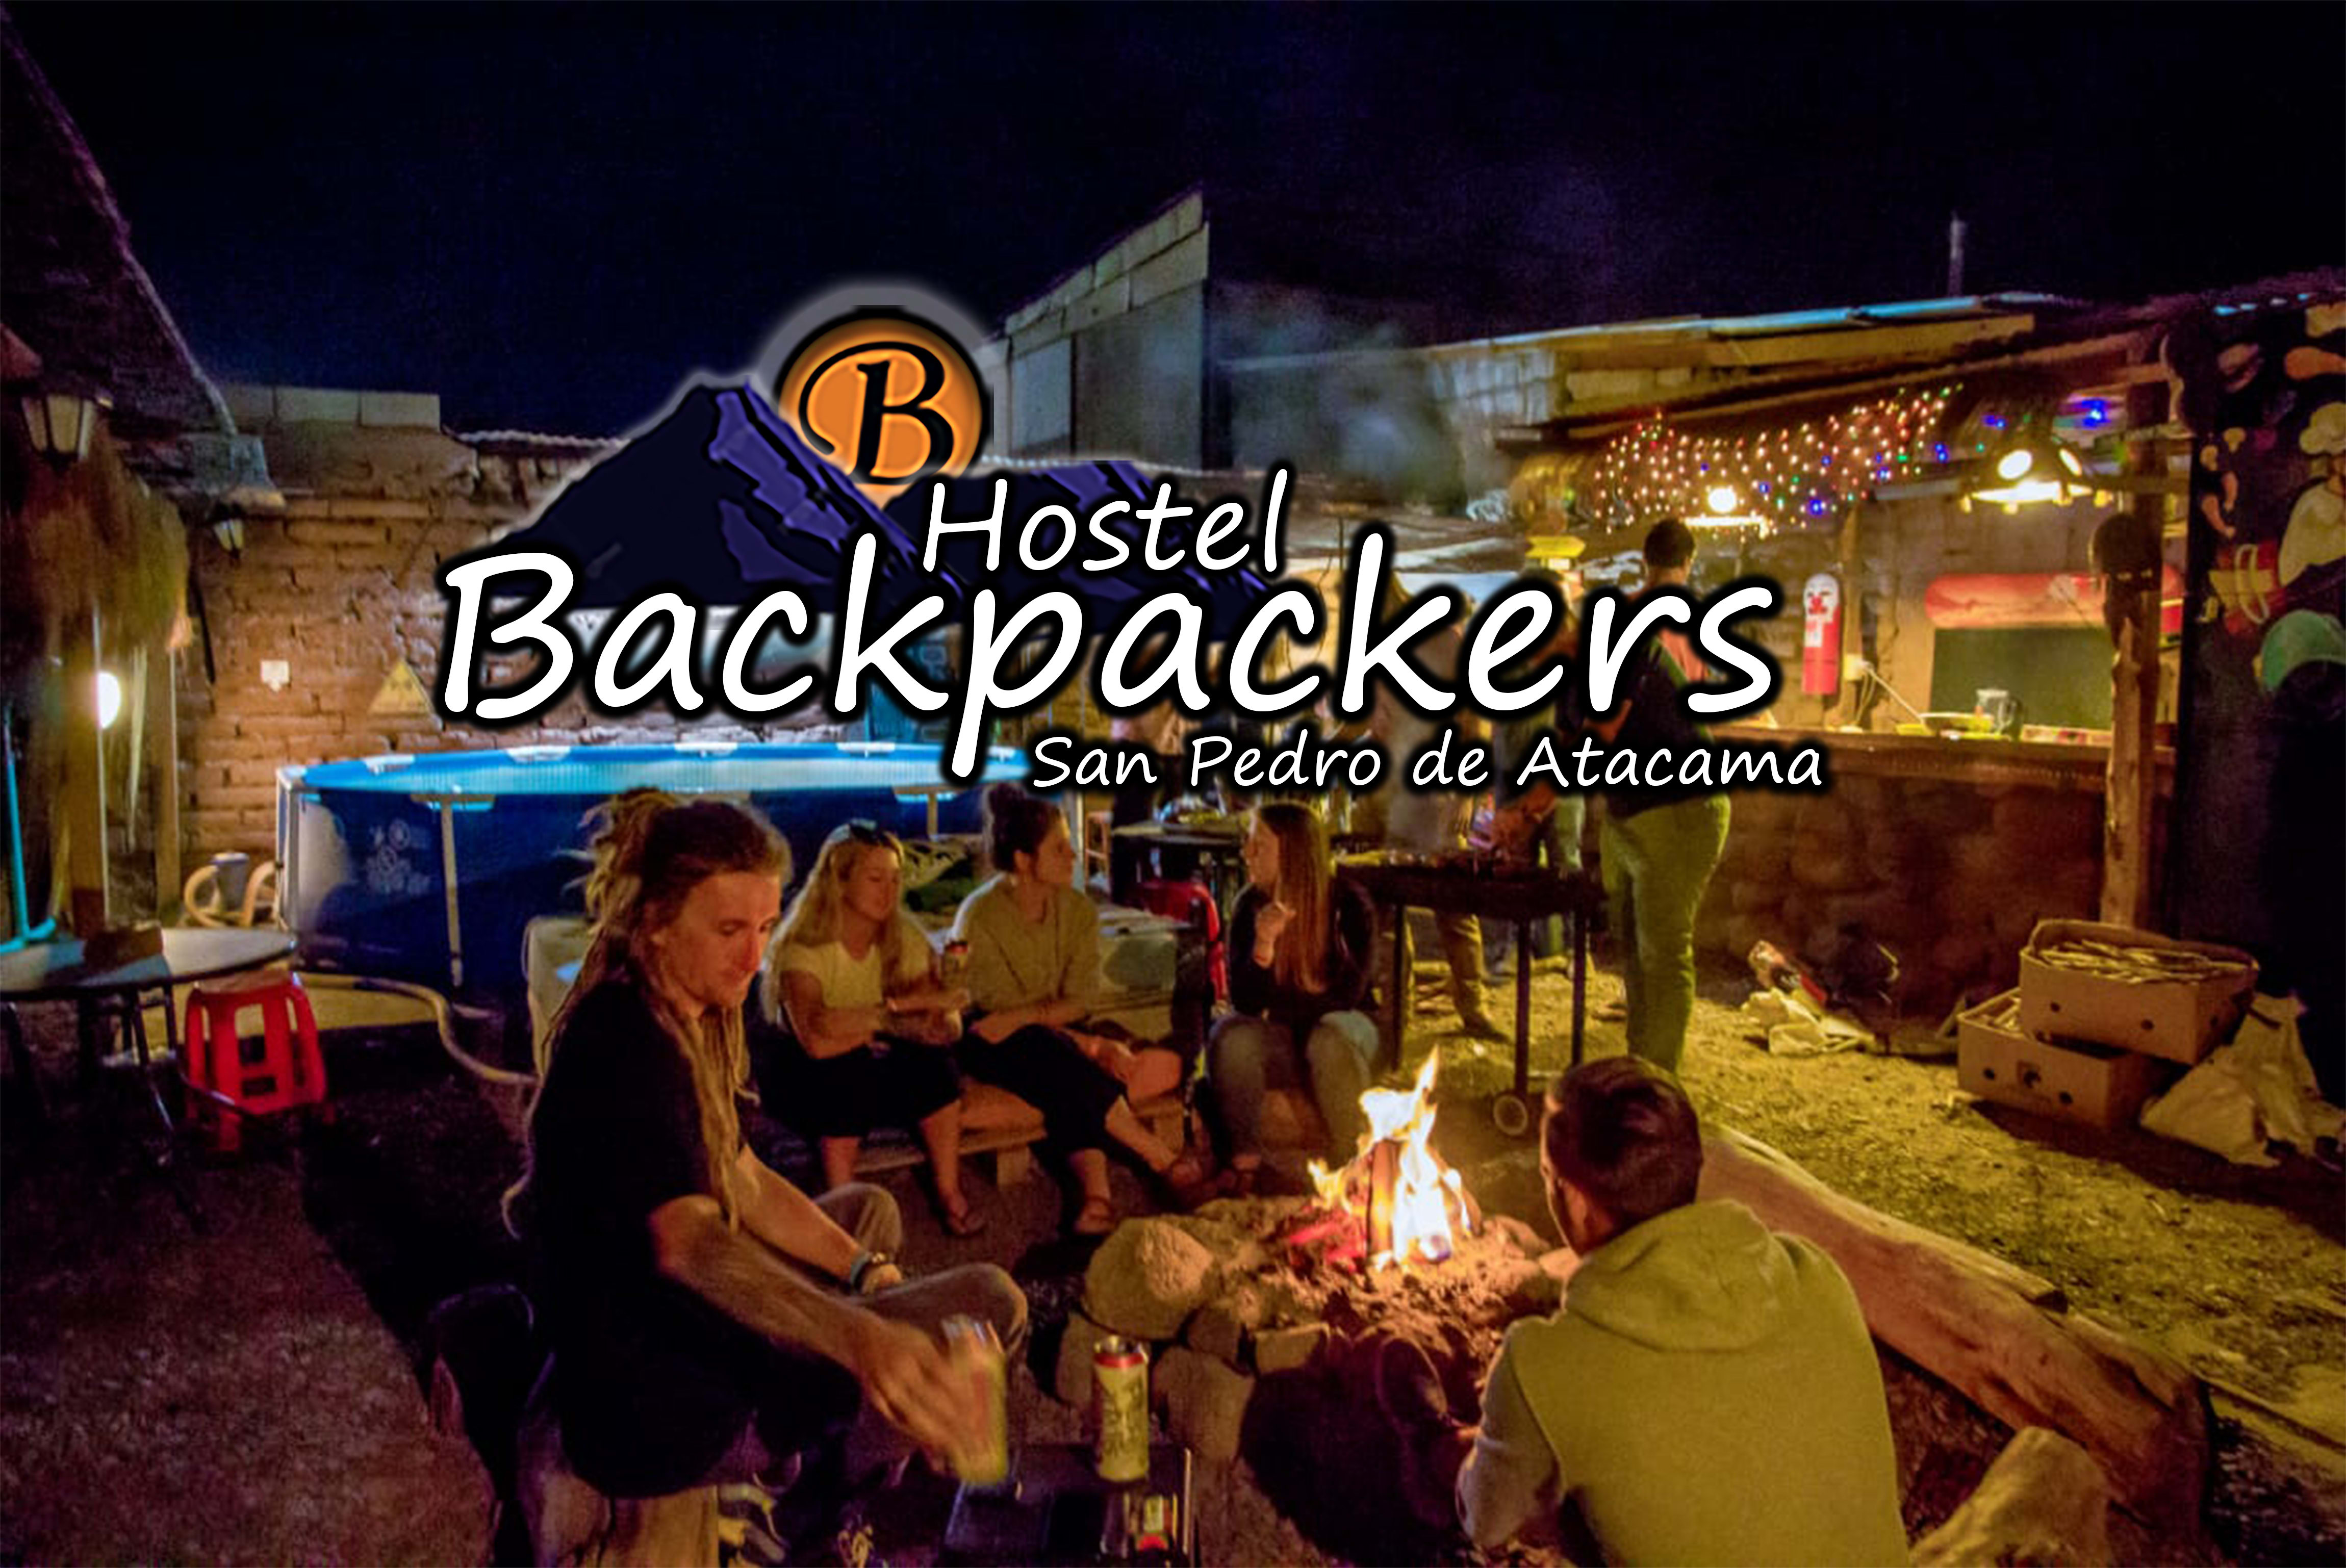 Backpackers San Pedro